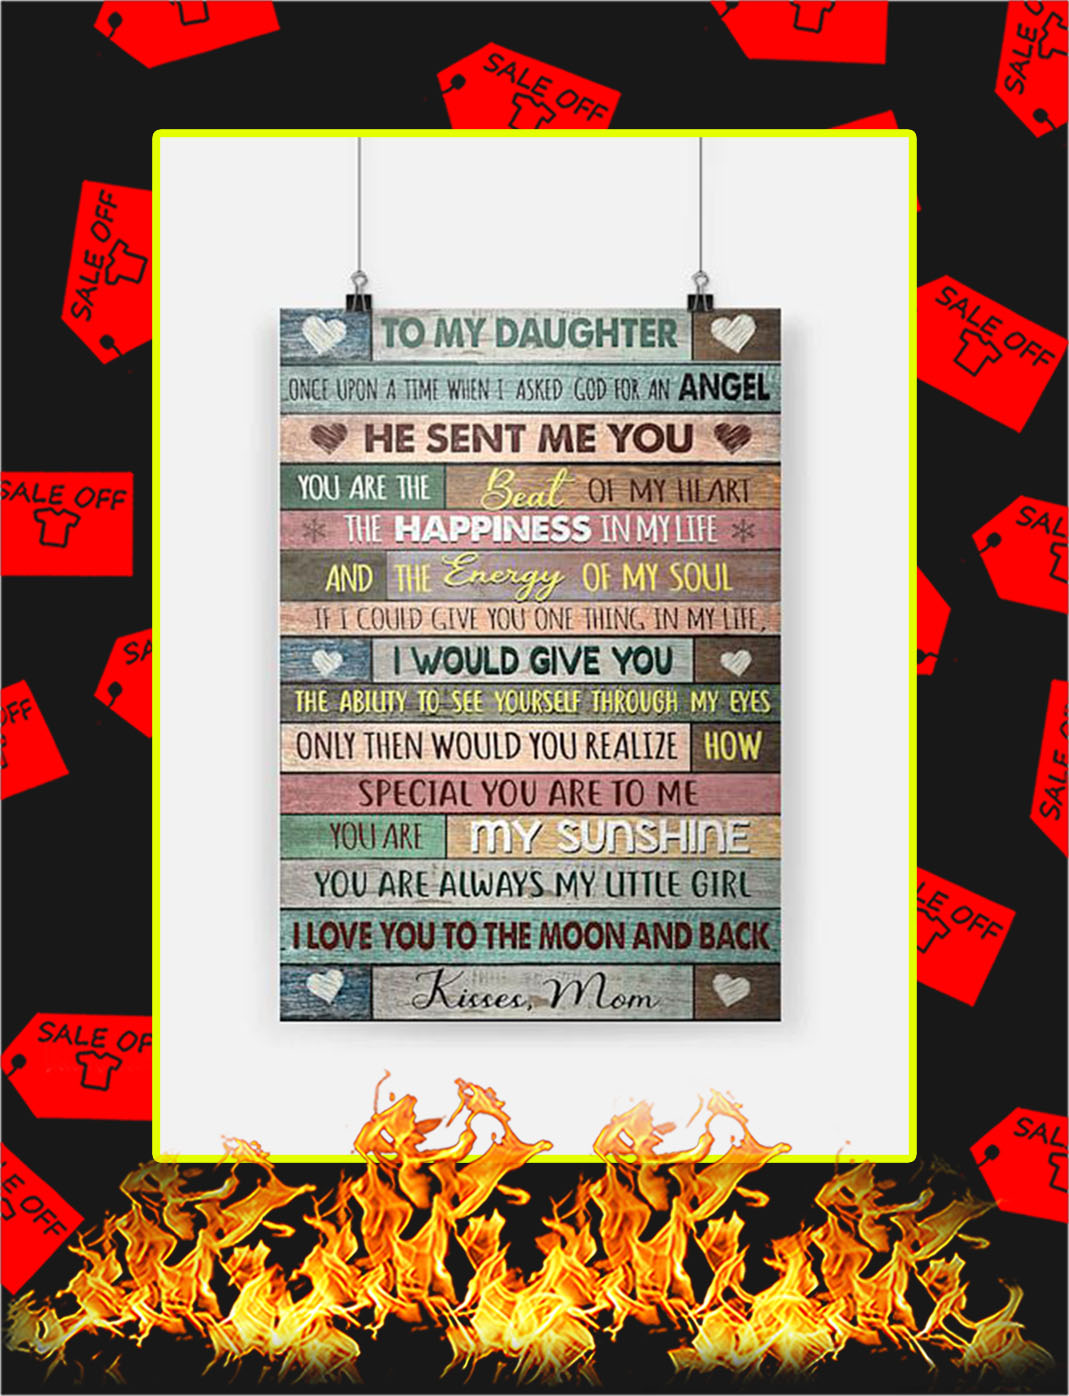 To My Daughter Kisses Mom Poster - A3